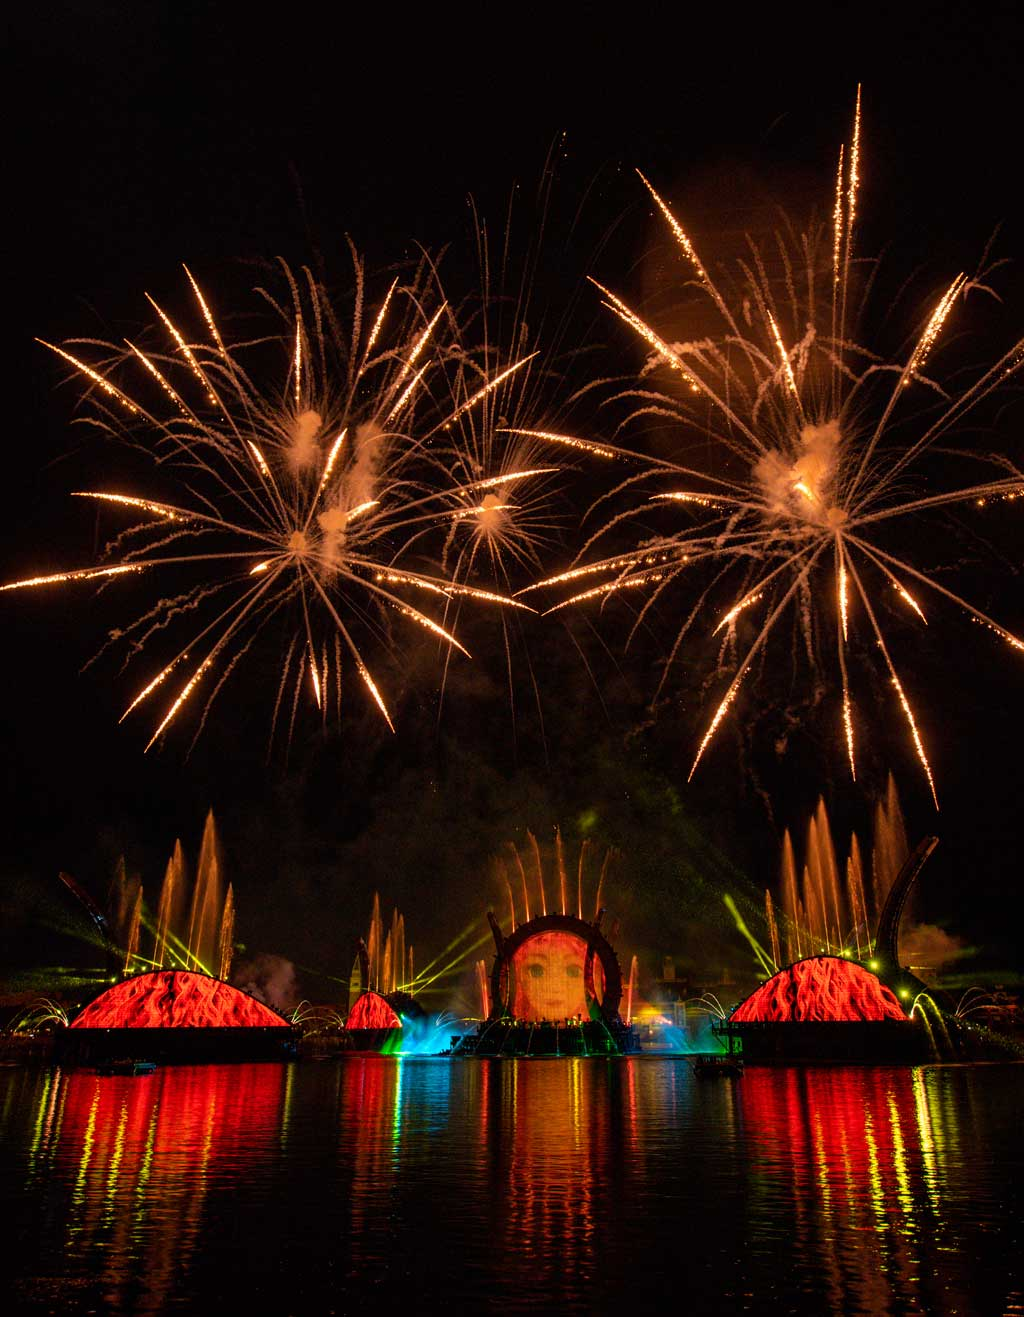 """""""Harmonious"""" at EPCOT is one of the largest nighttime spectaculars ever created for a Disney theme park. Debuting Oct. 1, 2021, at Walt Disney World Resort in Lake Buena Vista, Fla., the show celebrates the way Disney music inspires people the world over, carrying them away on a stream of familiar songs reinterpreted by a culturally diverse group of 240 artists from around the globe. """"Harmonious"""" features massive floating set pieces, custom-built LED panels, choreographed moving fountains, lights, pyrotechnics, lasers and more. (David Roark, photographer)"""